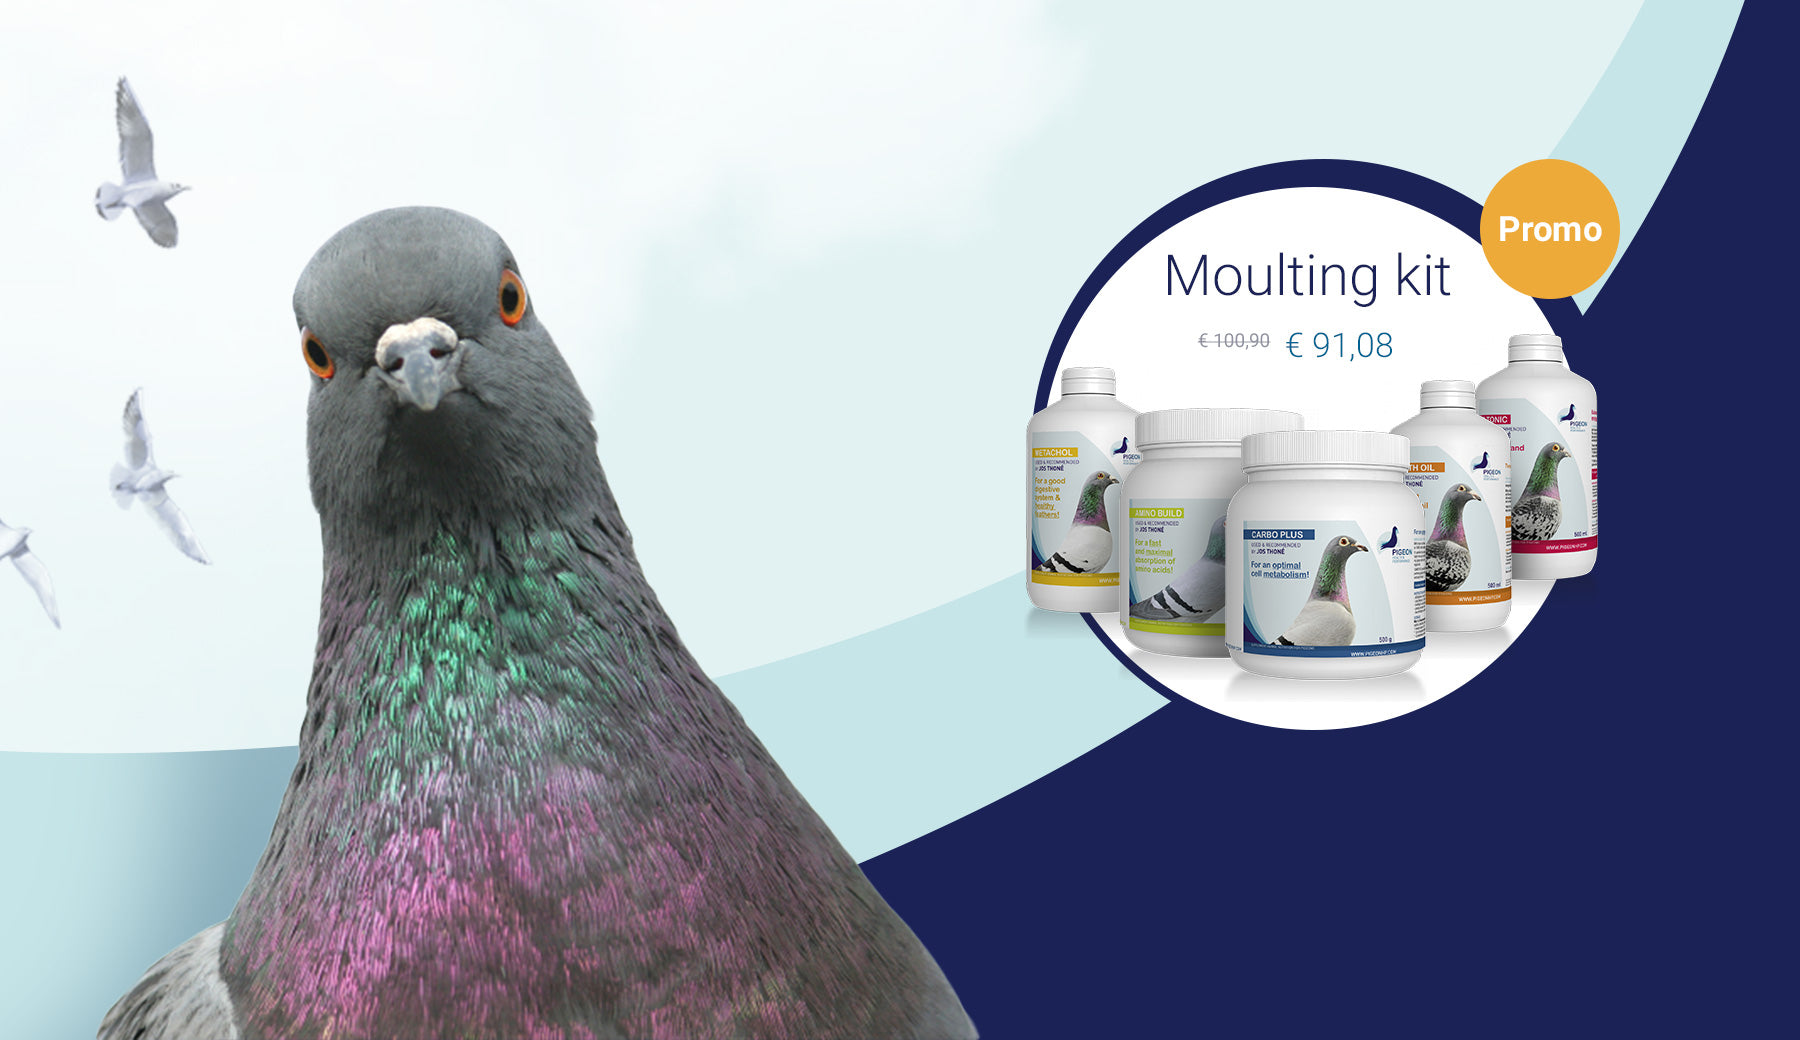 Prepare for moulting season